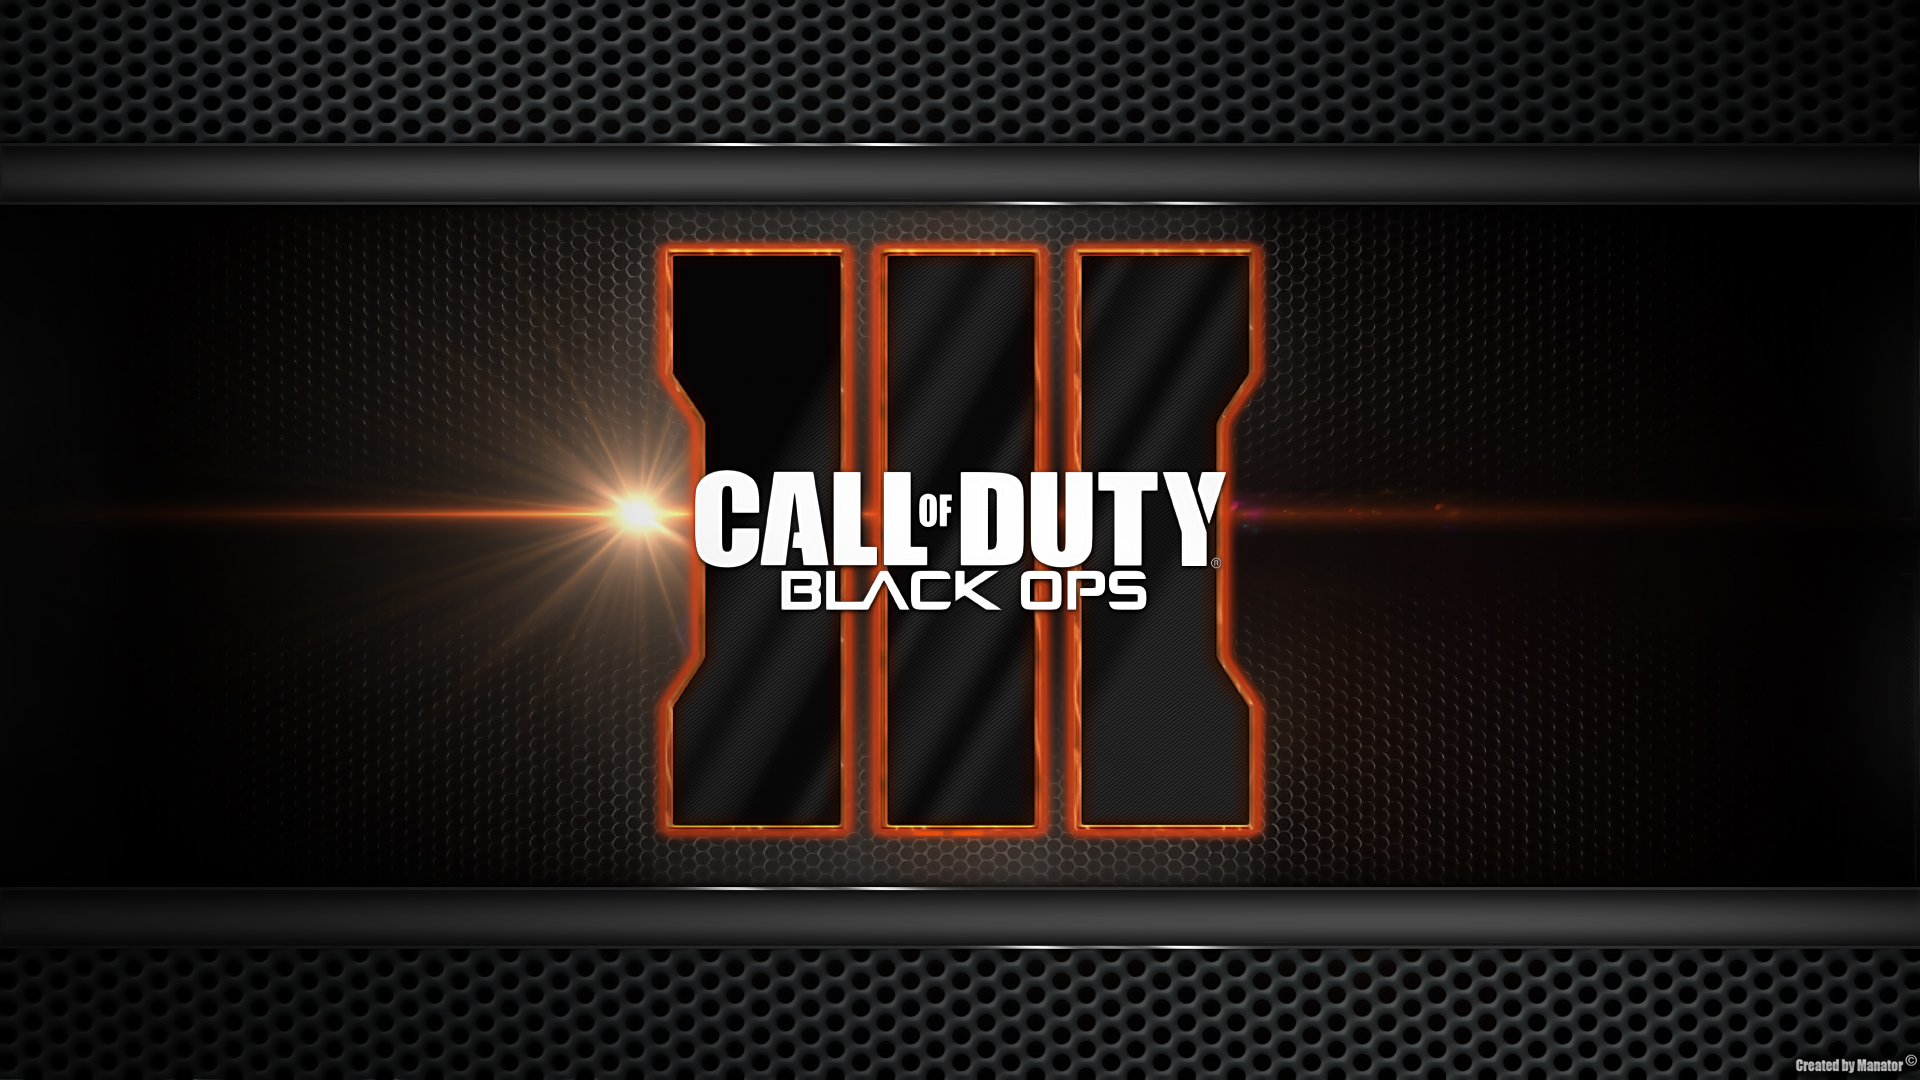 Call Of Duty Black Ops 3 Wallpaper 8 Wallpapersbq